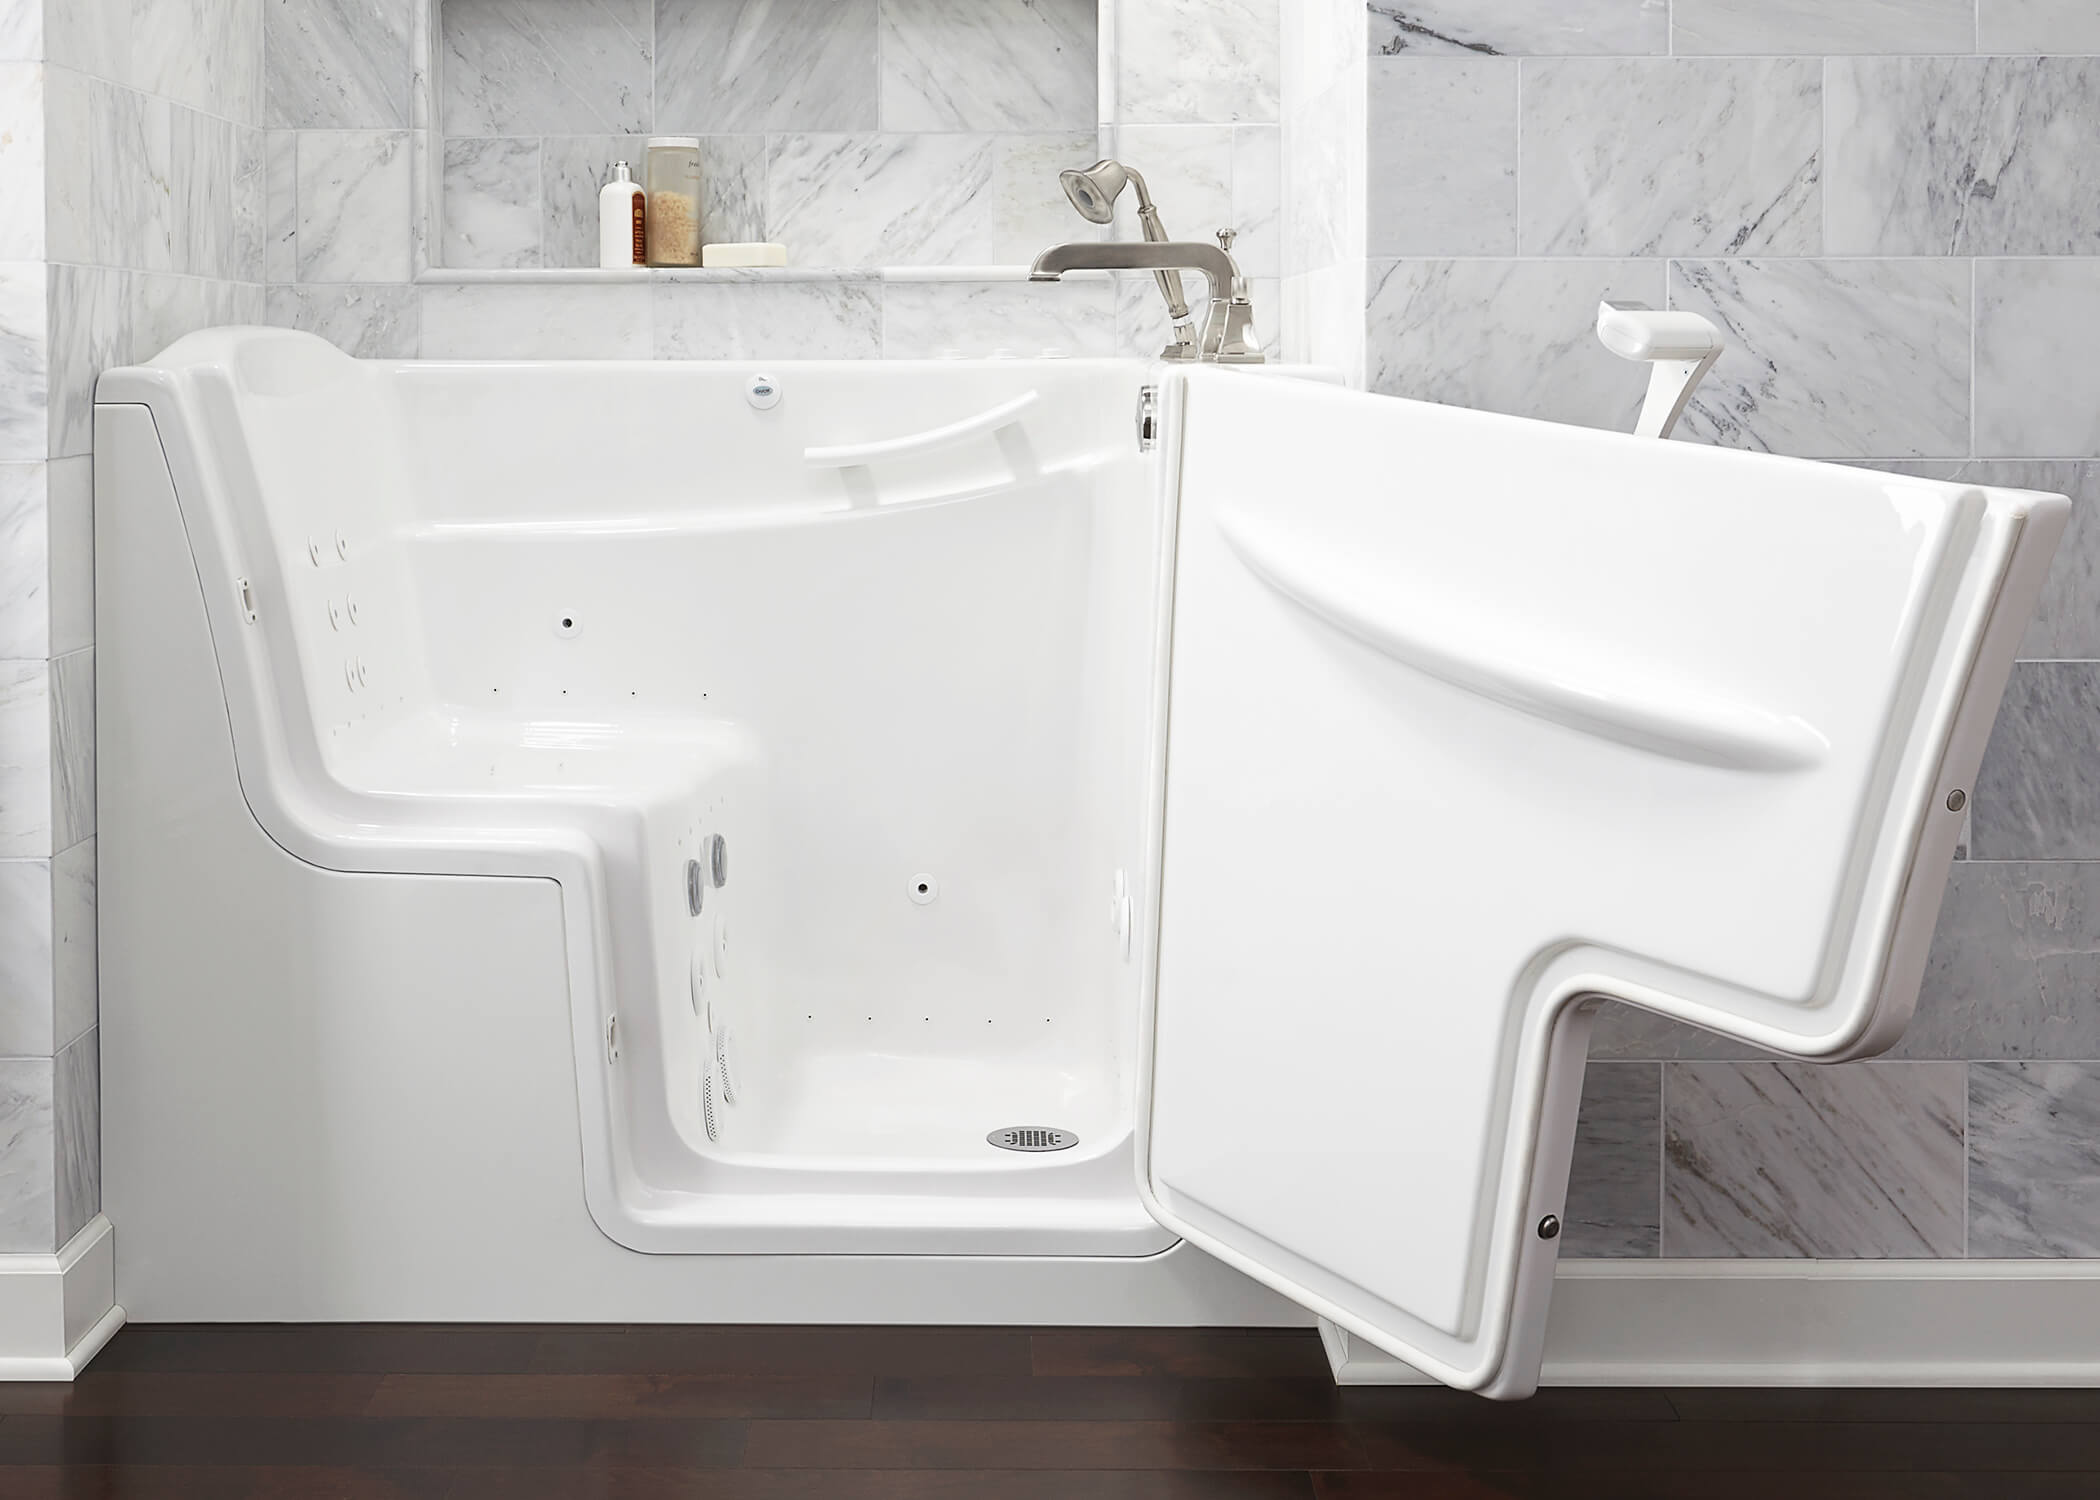 Walk-In Tubs - Spectrum One